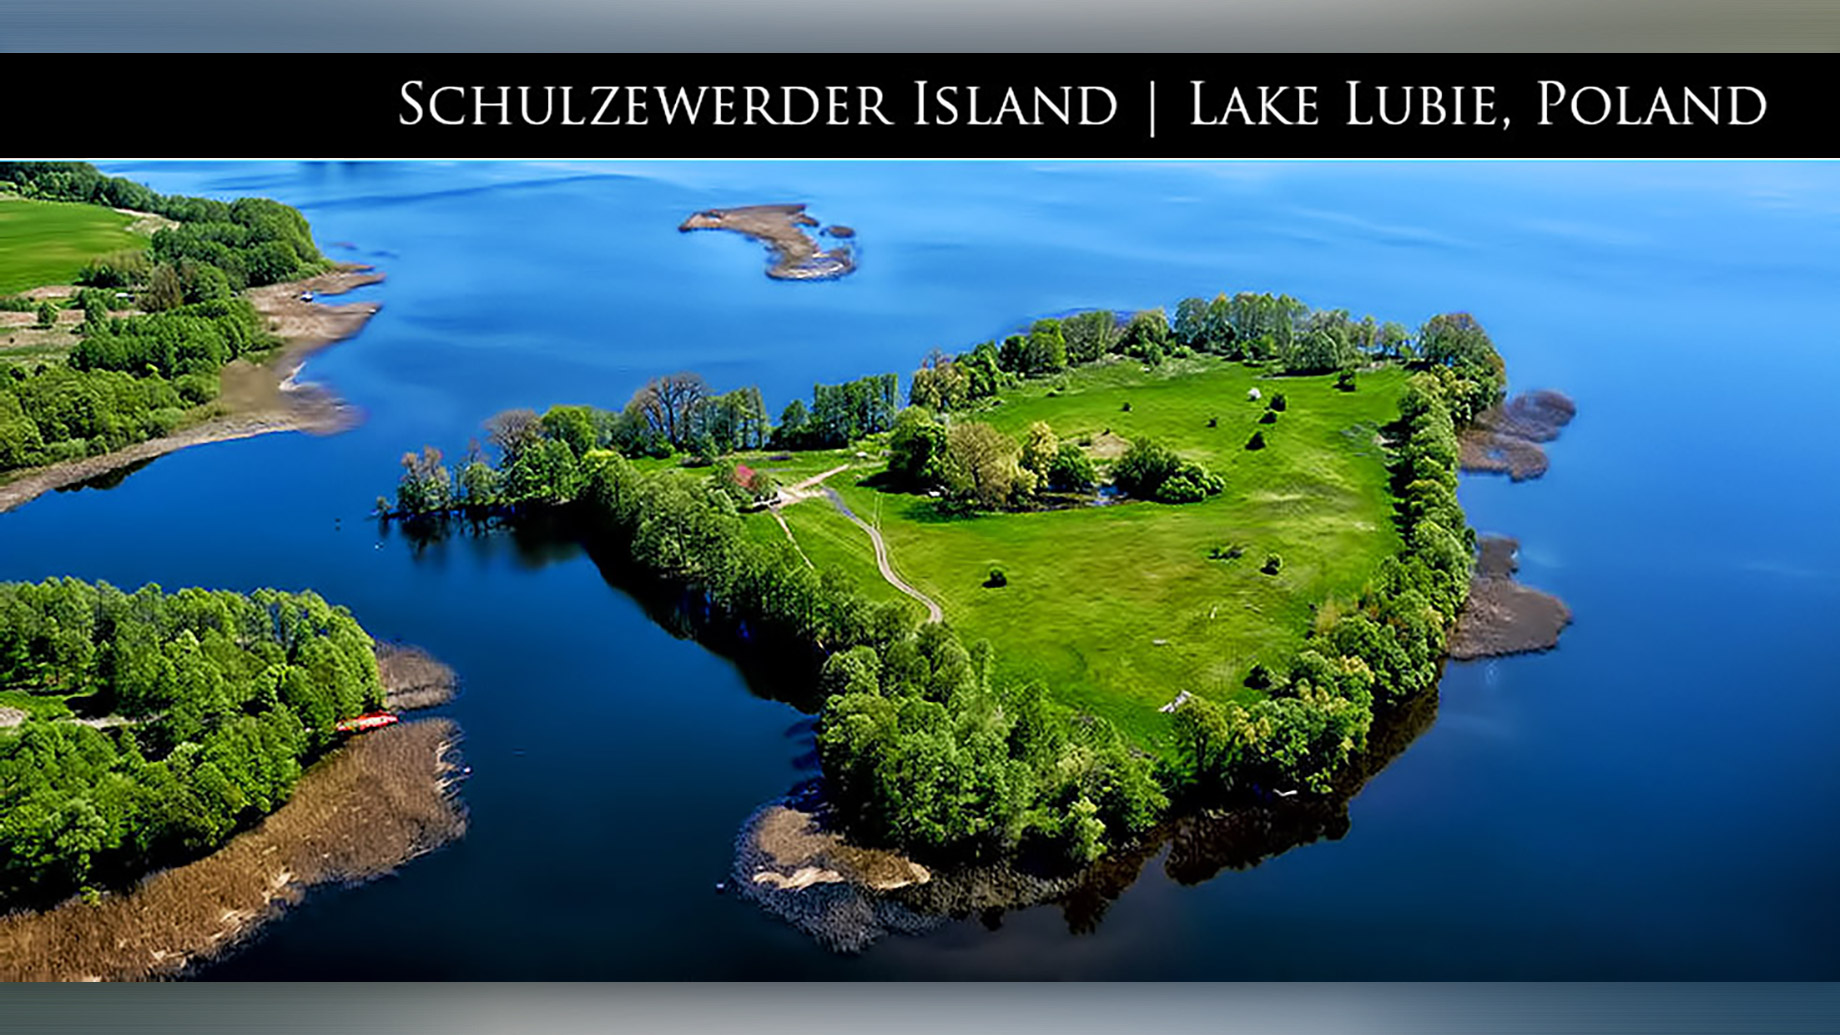 Rare Private Offering of Schulzewerder Island and Country Estate on Lake Lubie in Poland